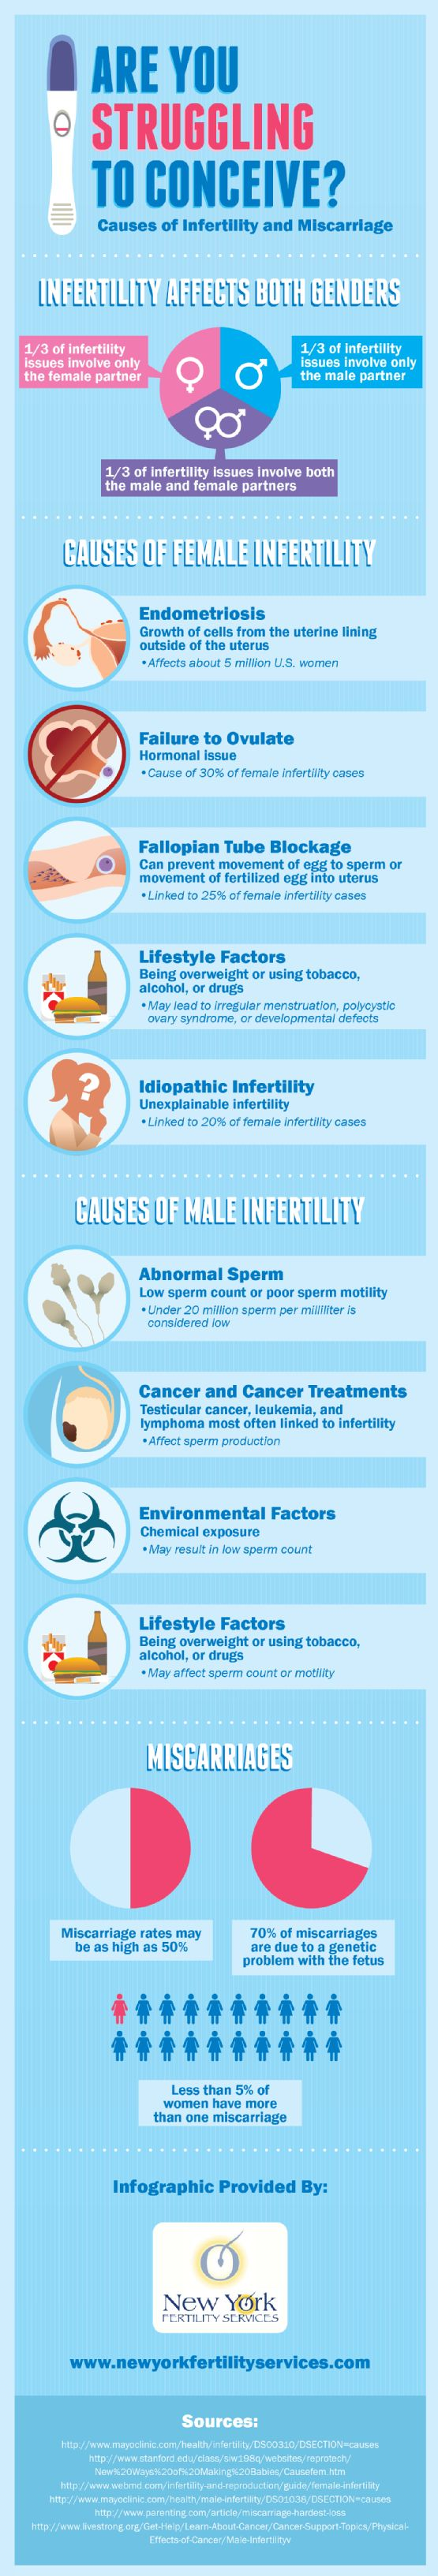 Causes of #Infertility and Miscarriage [INFOGRAPHIC]